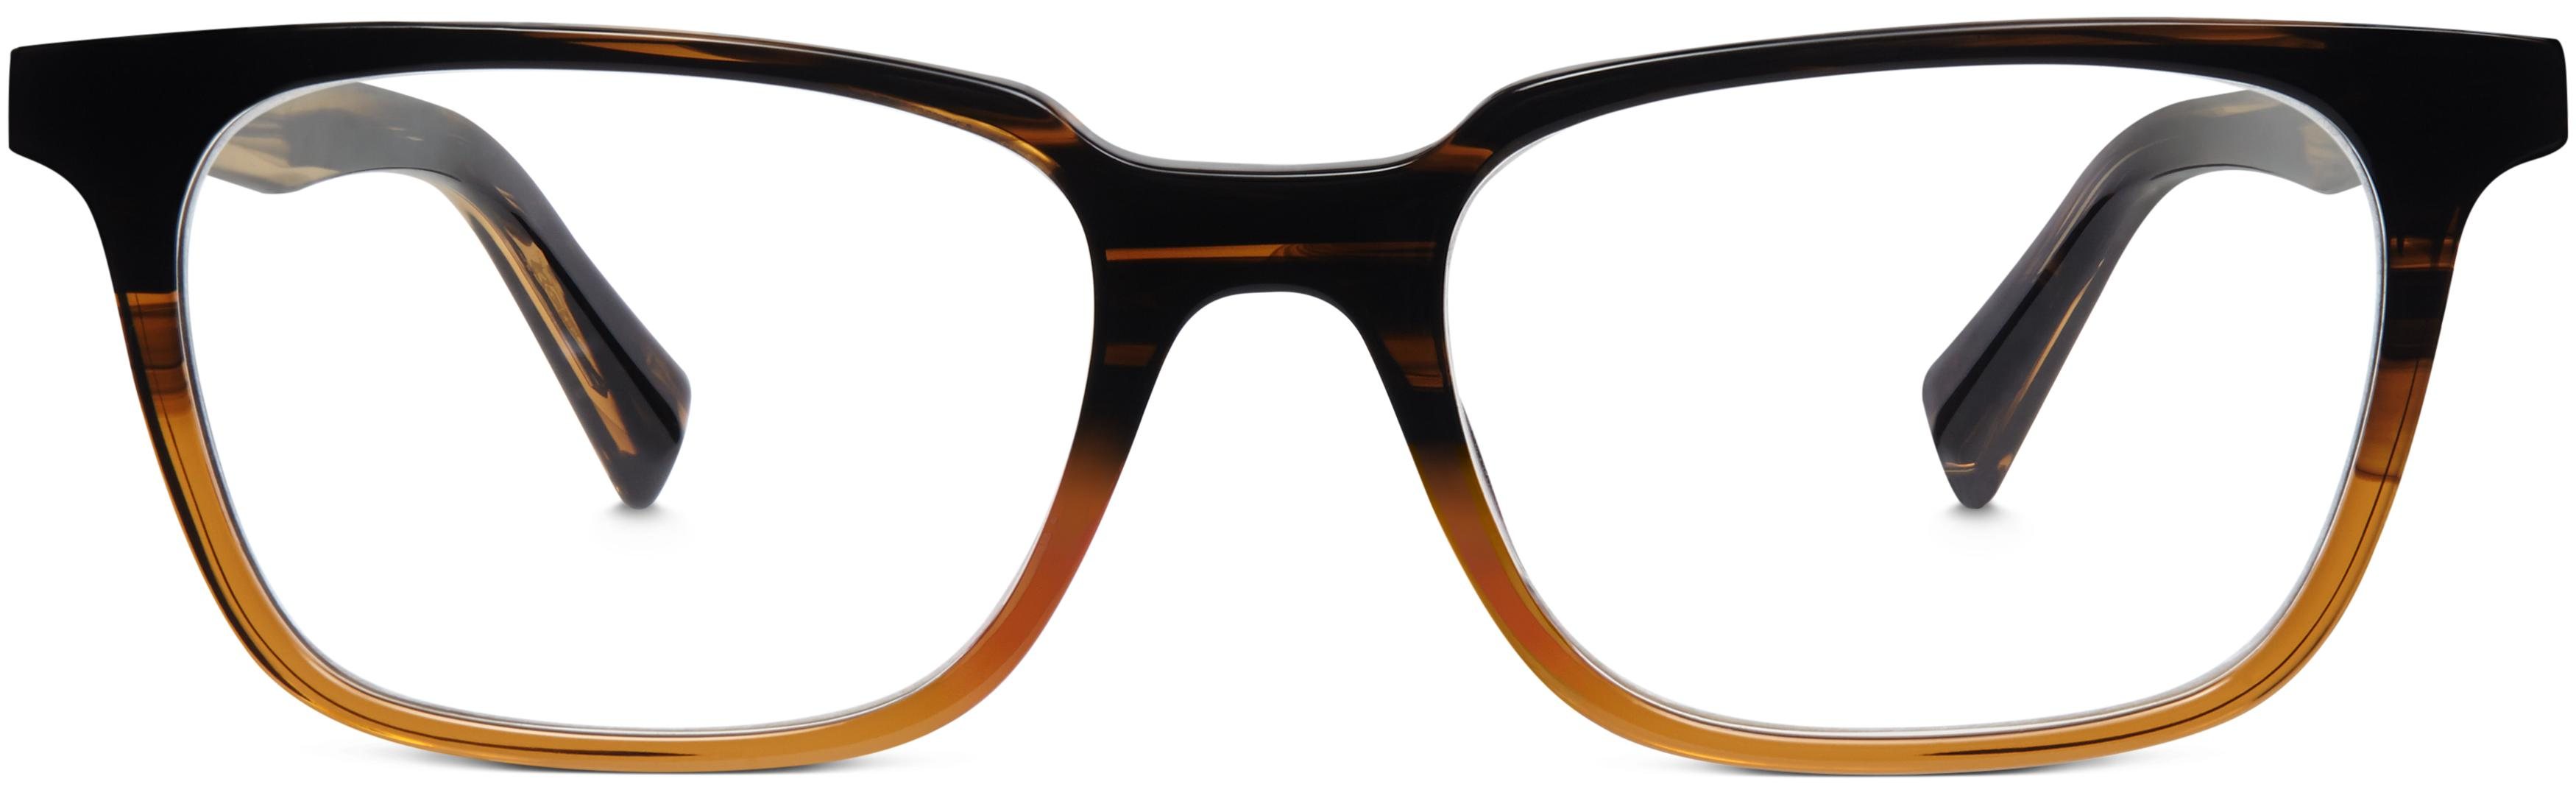 Men\'s Eyeglasses | Warby Parker